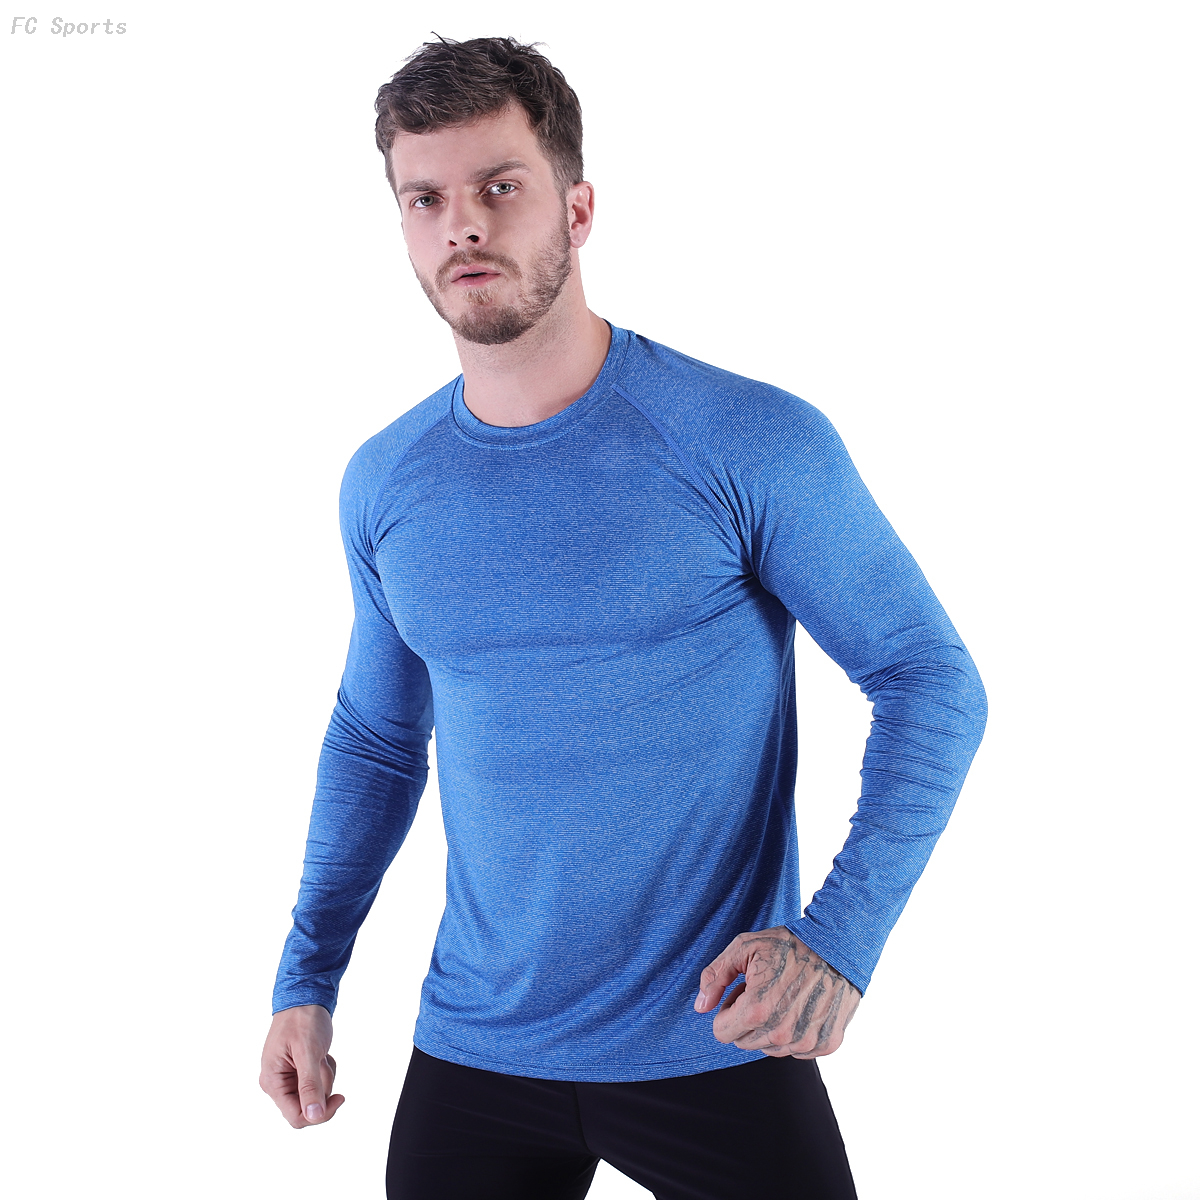 FC Sports Men Gym Yoga Train Wear Running Active Garments Long Shirts Round Neck Tops